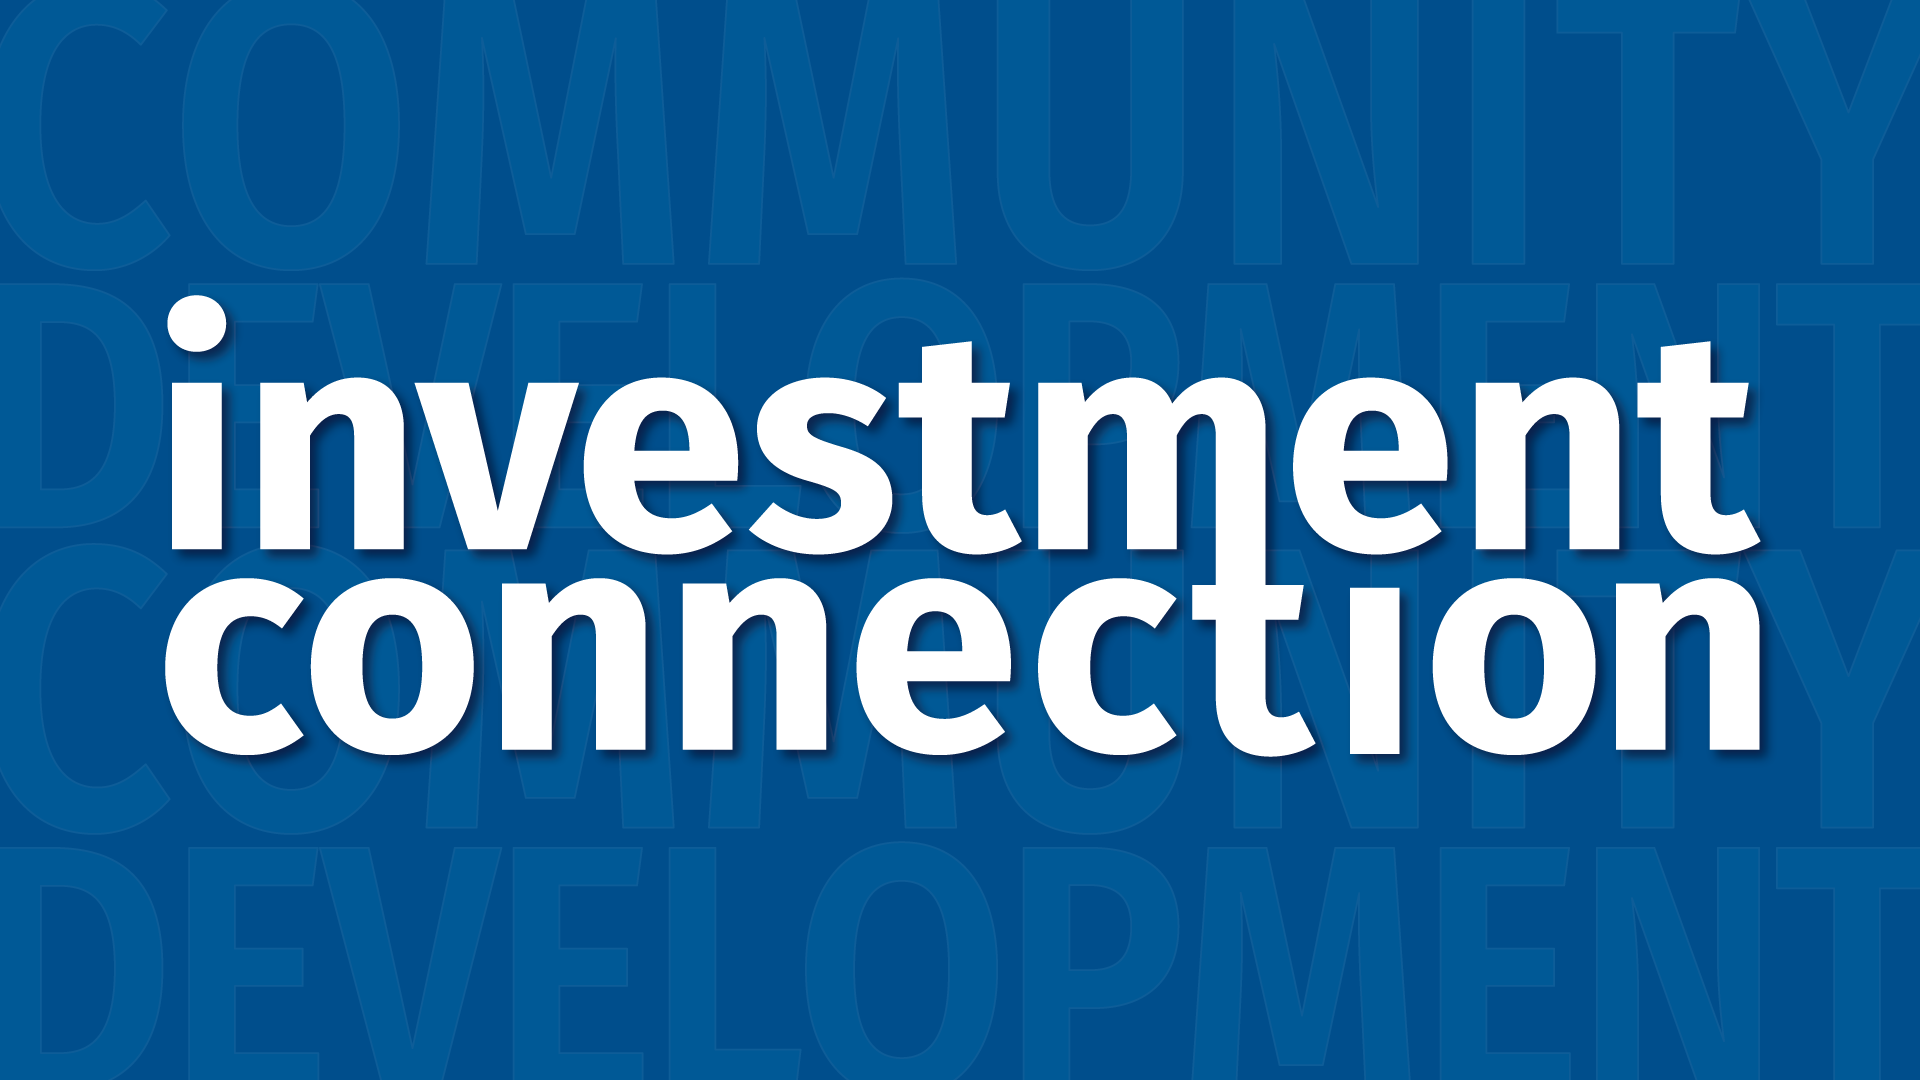 Investment Connection key image